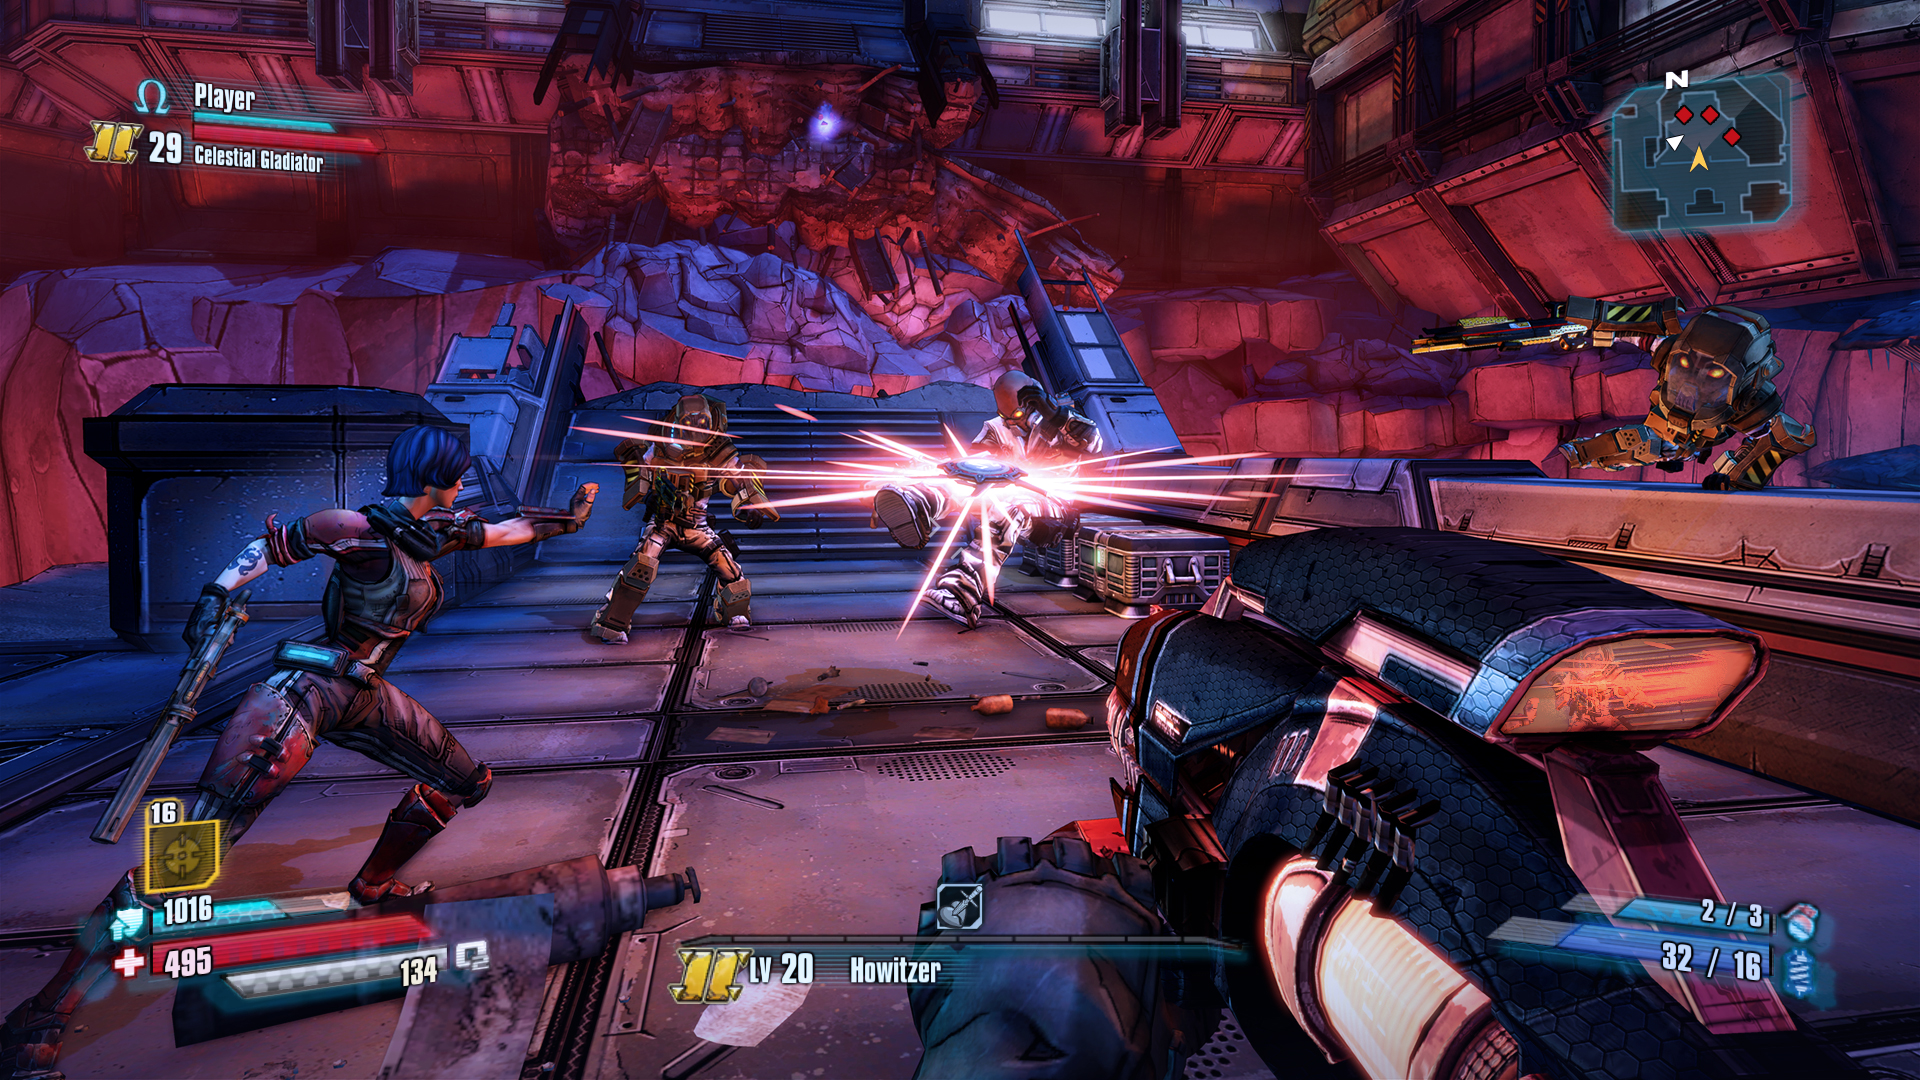 [GameGokil] Borderlands The Pre Sequel [Iso] Single Link Direct Link Full Version